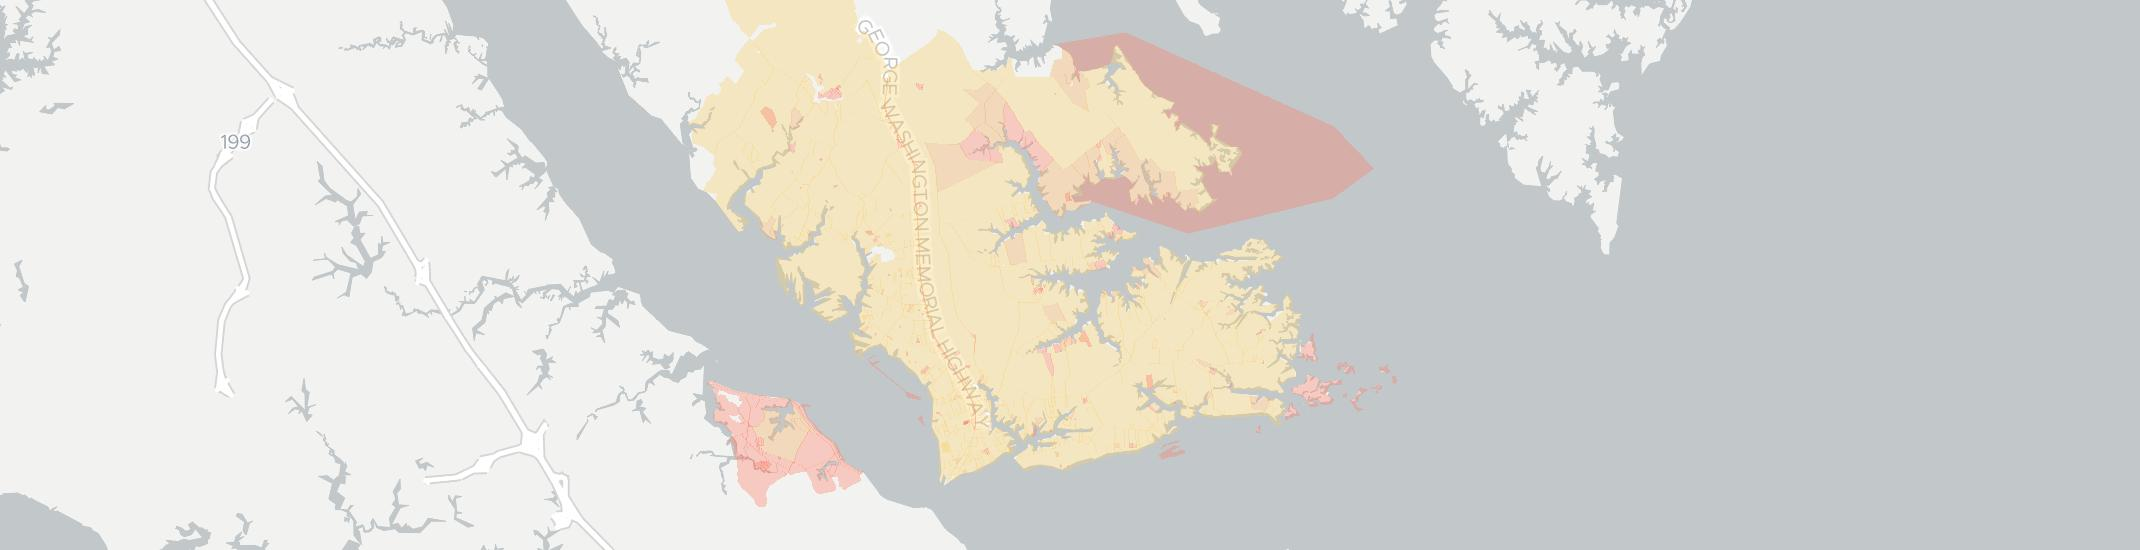 Hayes Virginia Map.Internet Providers In Hayes Va Compare 10 Providers